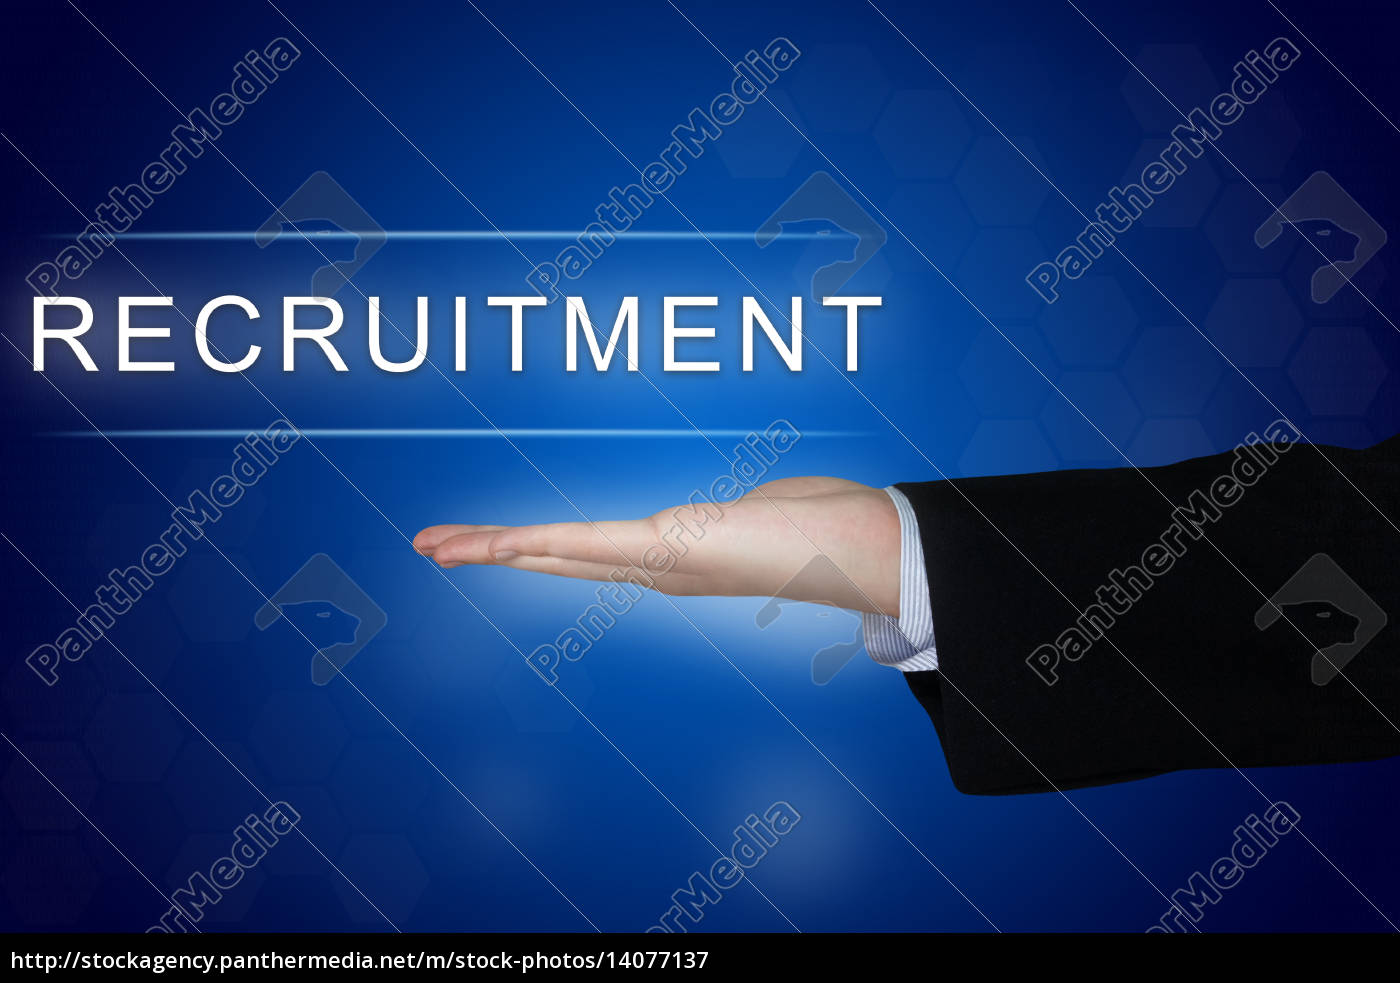 recruitment, button, on, blue, background - 14077137